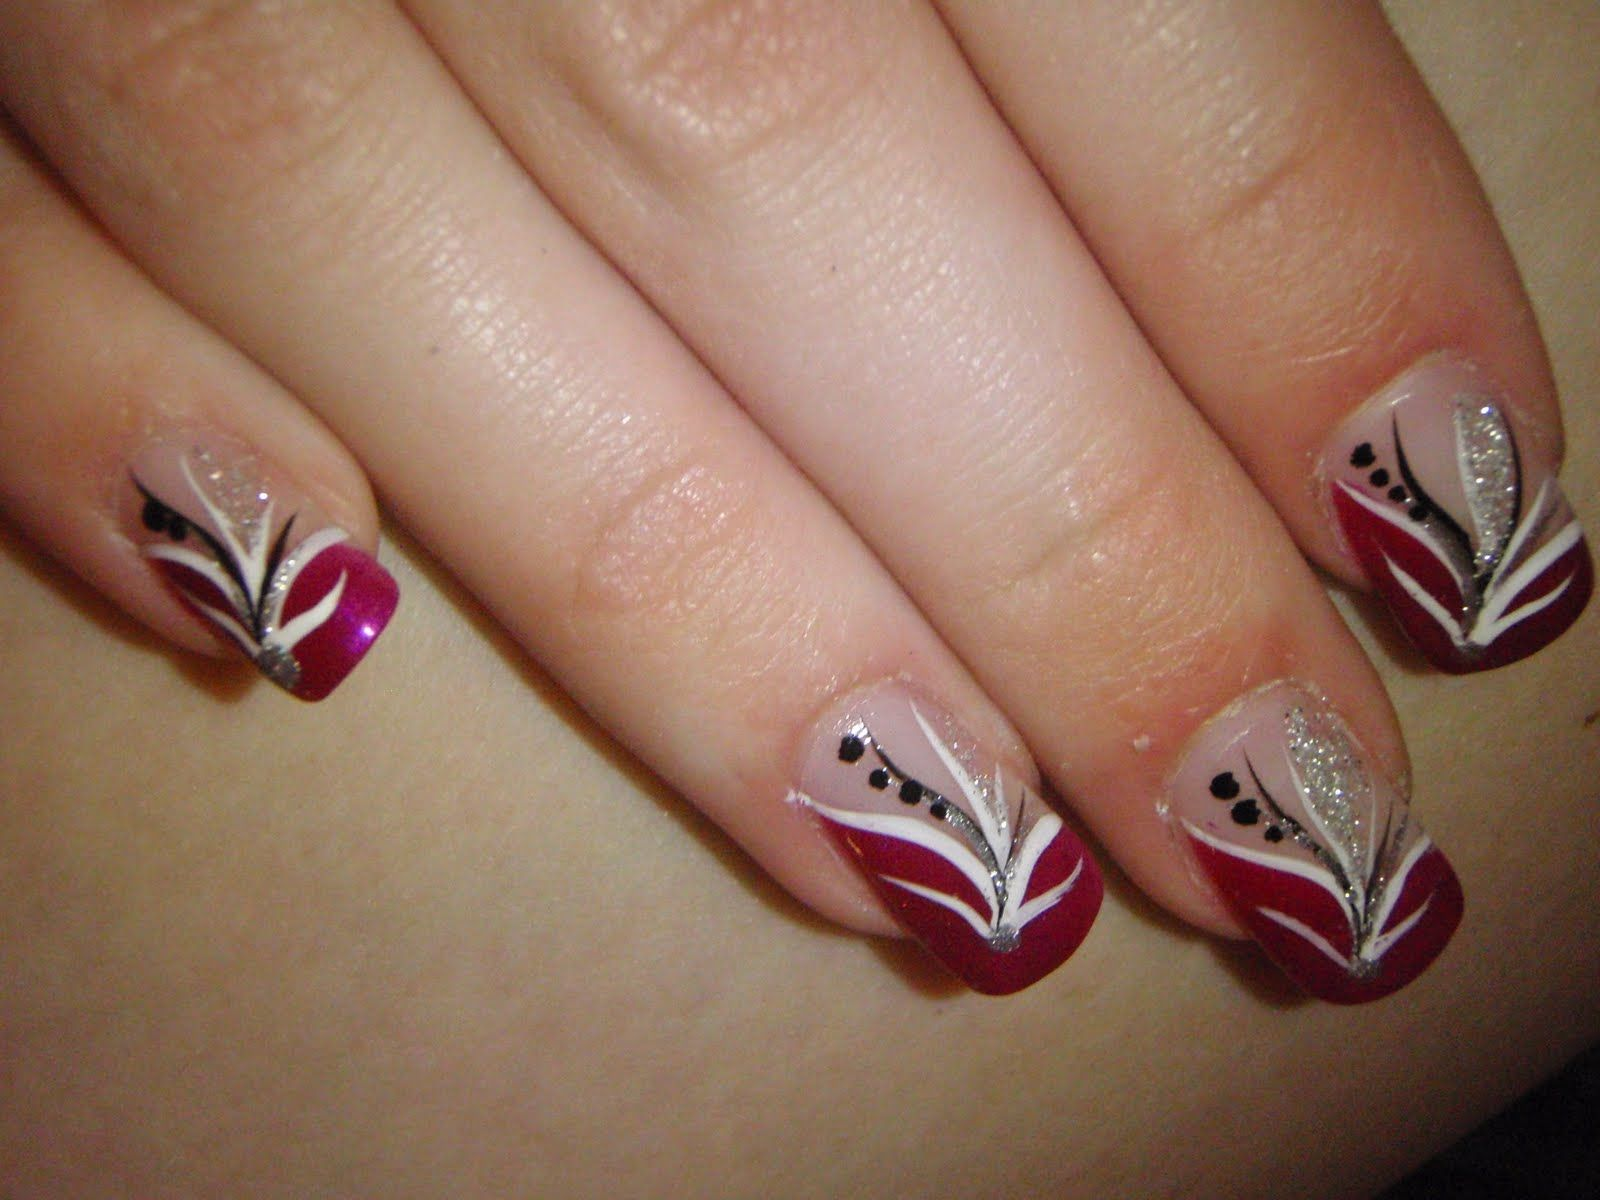 Red White And Black Nail Designs For These To Grow Out Now So